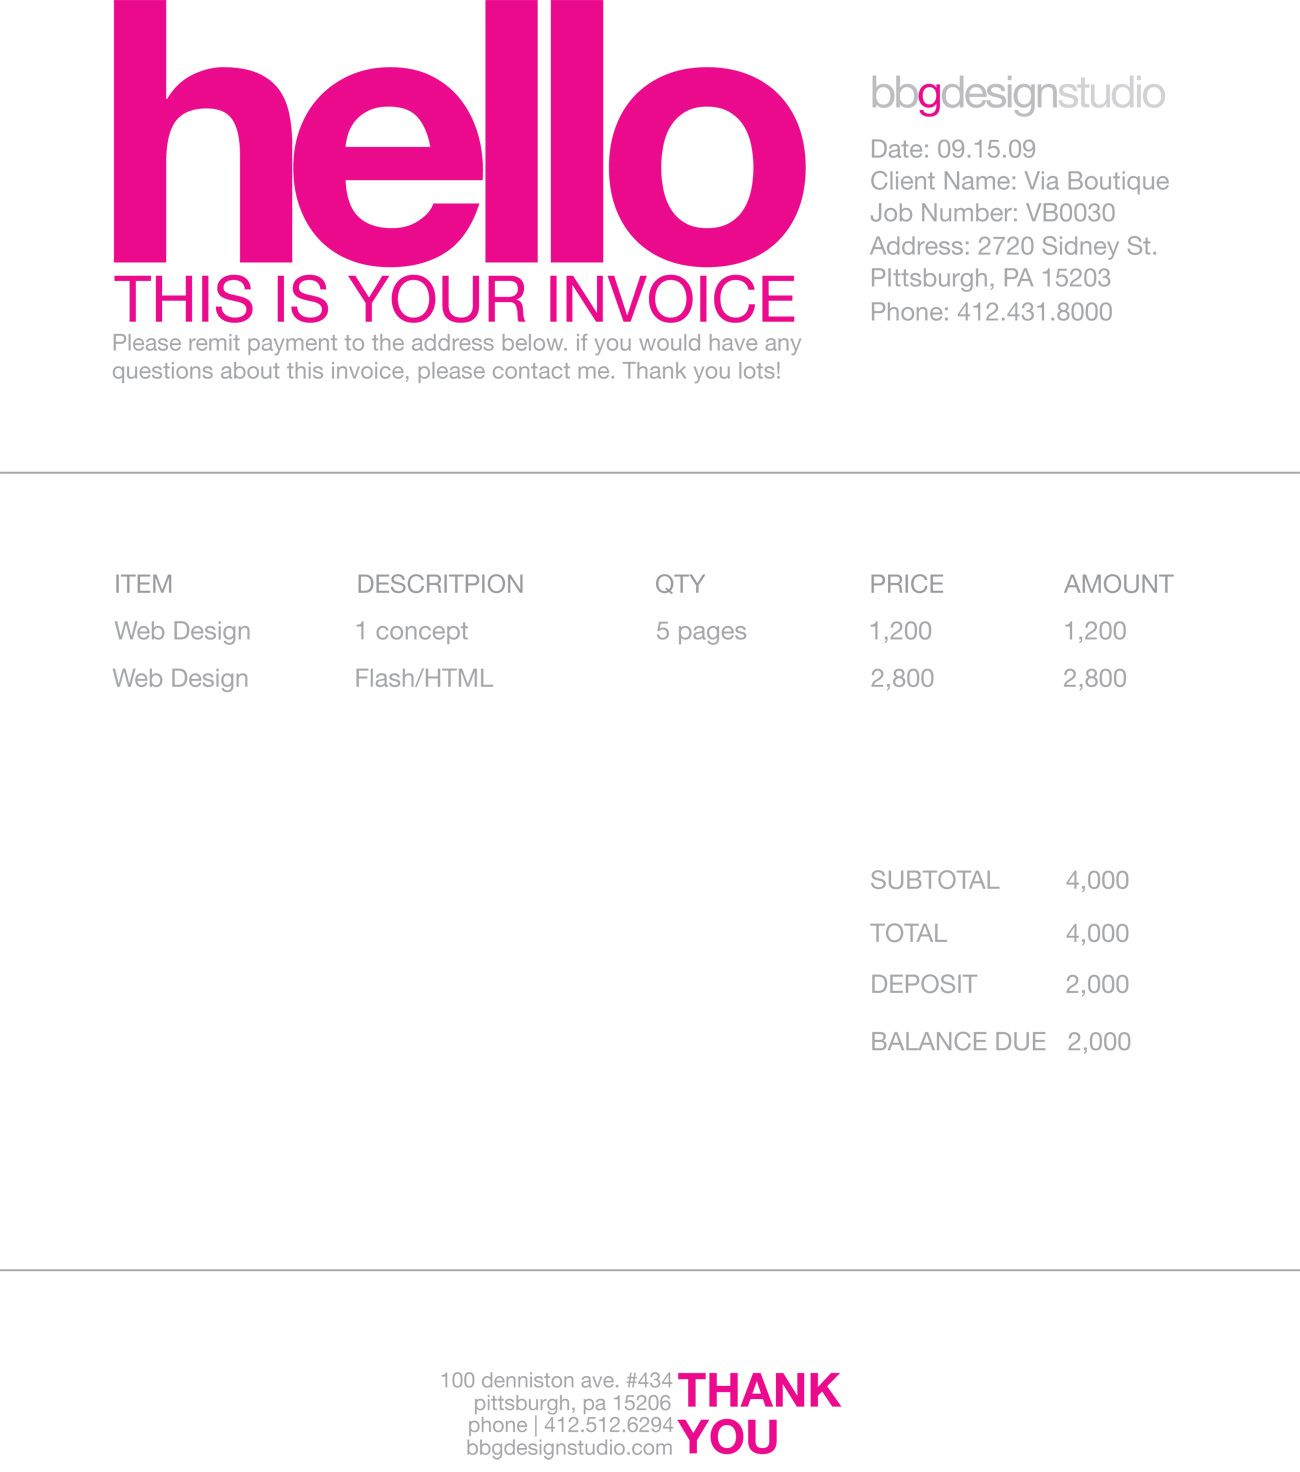 Coachoutletonlineplusus  Fascinating  Images About Invoice Design On Pinterest With Great Free Invoice Templates Word Besides Mazda Invoice Price  Furthermore Insurance Invoice With Easy On The Eye What Is The Invoice Also Ford F Invoice In Addition Invoice Templates In Word And Freelance Designer Invoice Template As Well As How To Buy A Car Below Invoice Additionally Open Invoice Login From Pinterestcom With Coachoutletonlineplusus  Great  Images About Invoice Design On Pinterest With Easy On The Eye Free Invoice Templates Word Besides Mazda Invoice Price  Furthermore Insurance Invoice And Fascinating What Is The Invoice Also Ford F Invoice In Addition Invoice Templates In Word From Pinterestcom